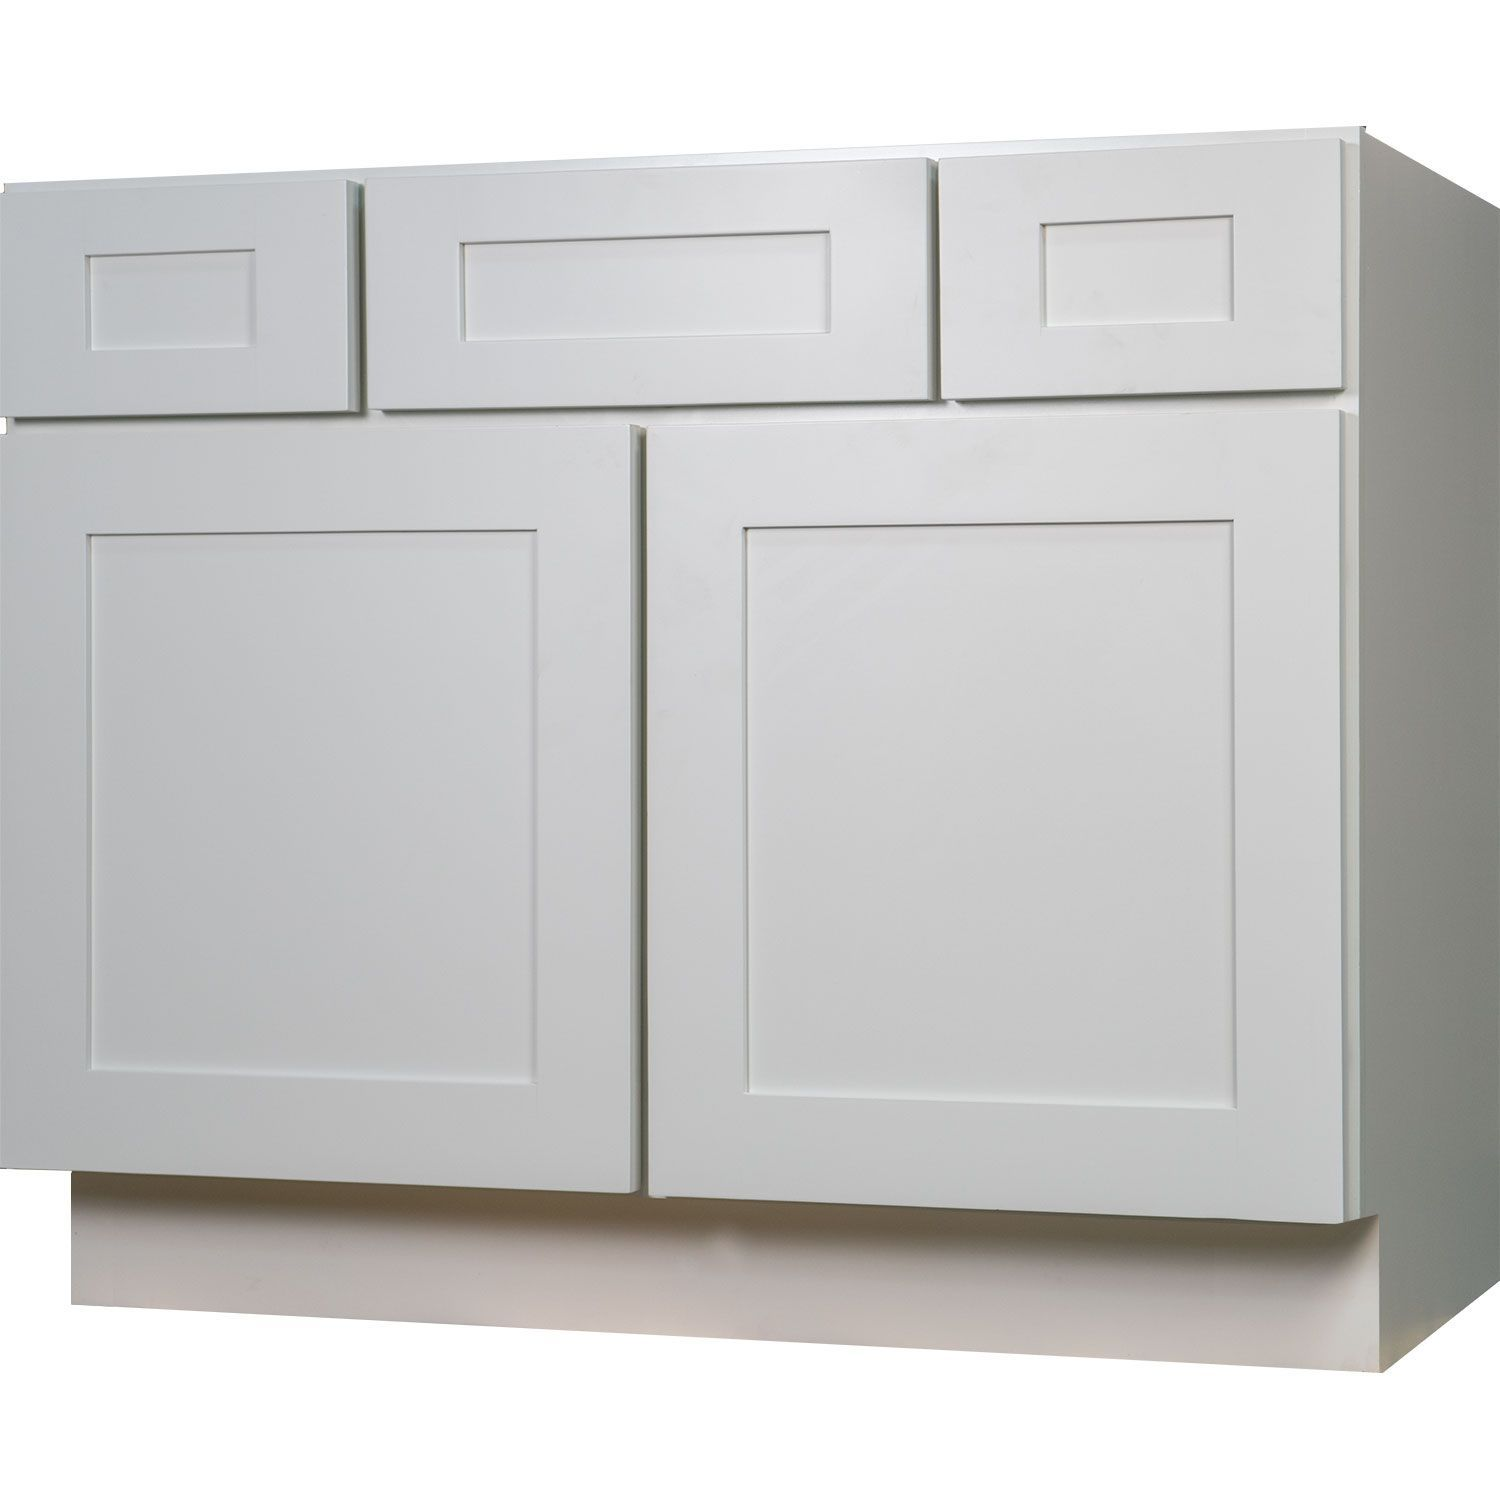 42 inch bathroom vanity with sink - 42 Inch Bathroom Vanity Single Sink Cabinet In Shaker White With Soft Close Drawers